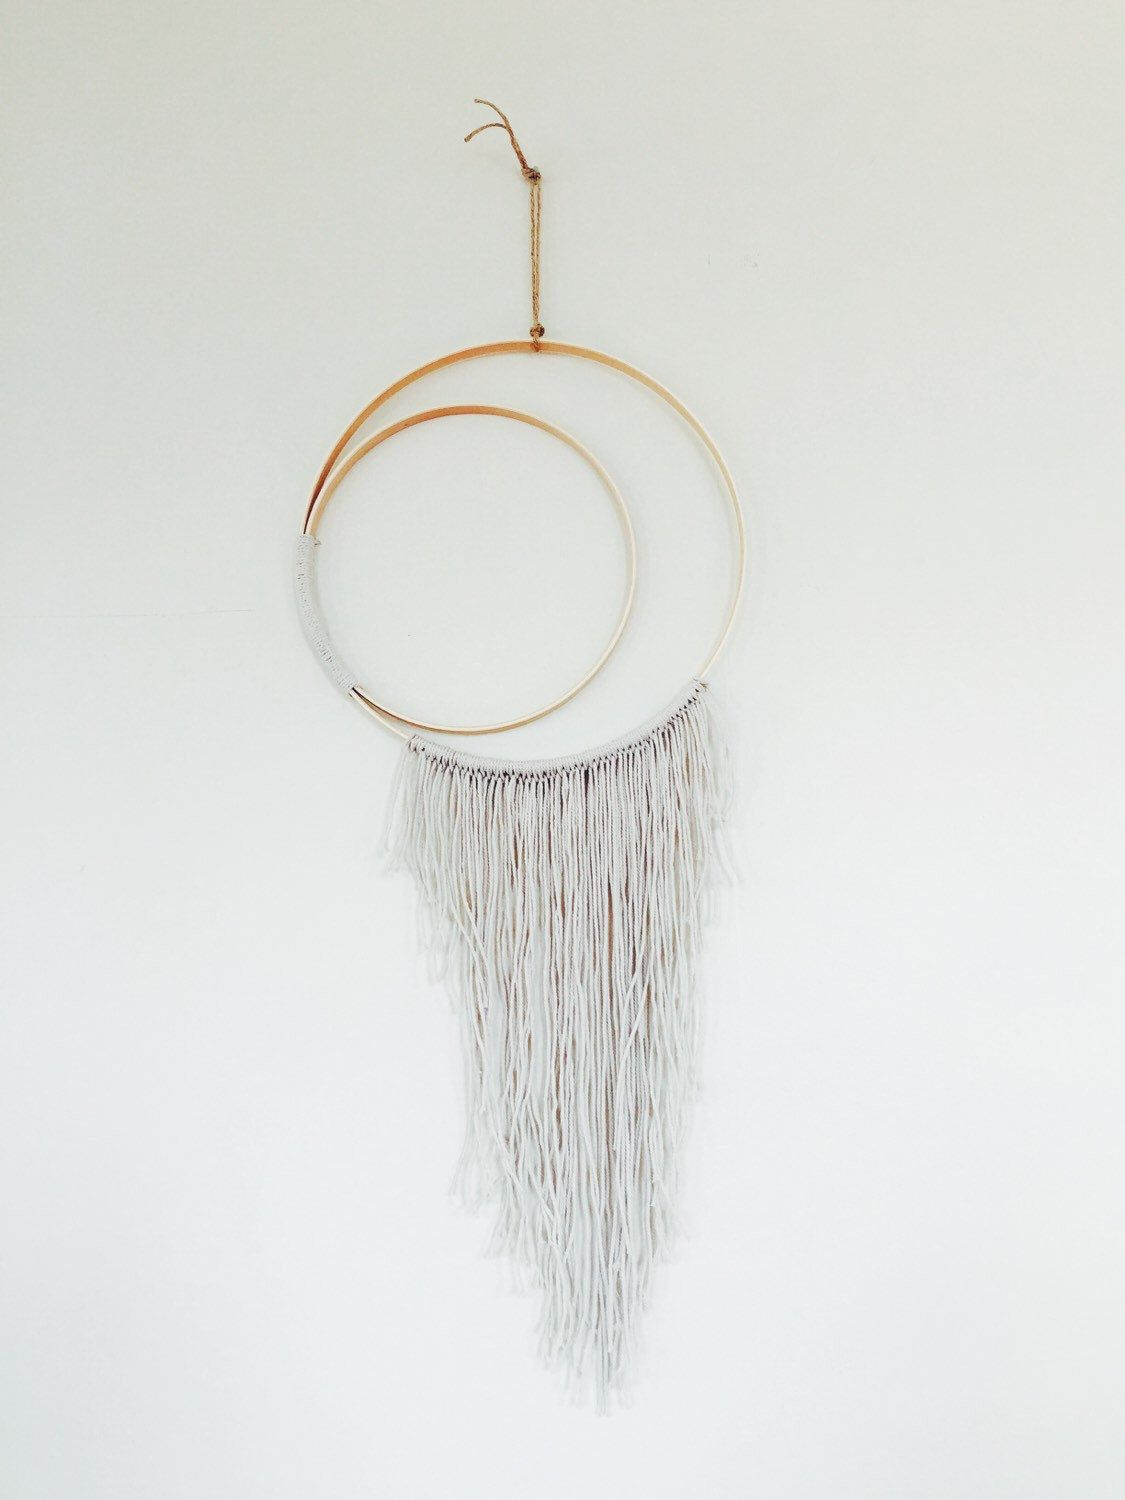 Love This A Little Too Boho Fringe Though